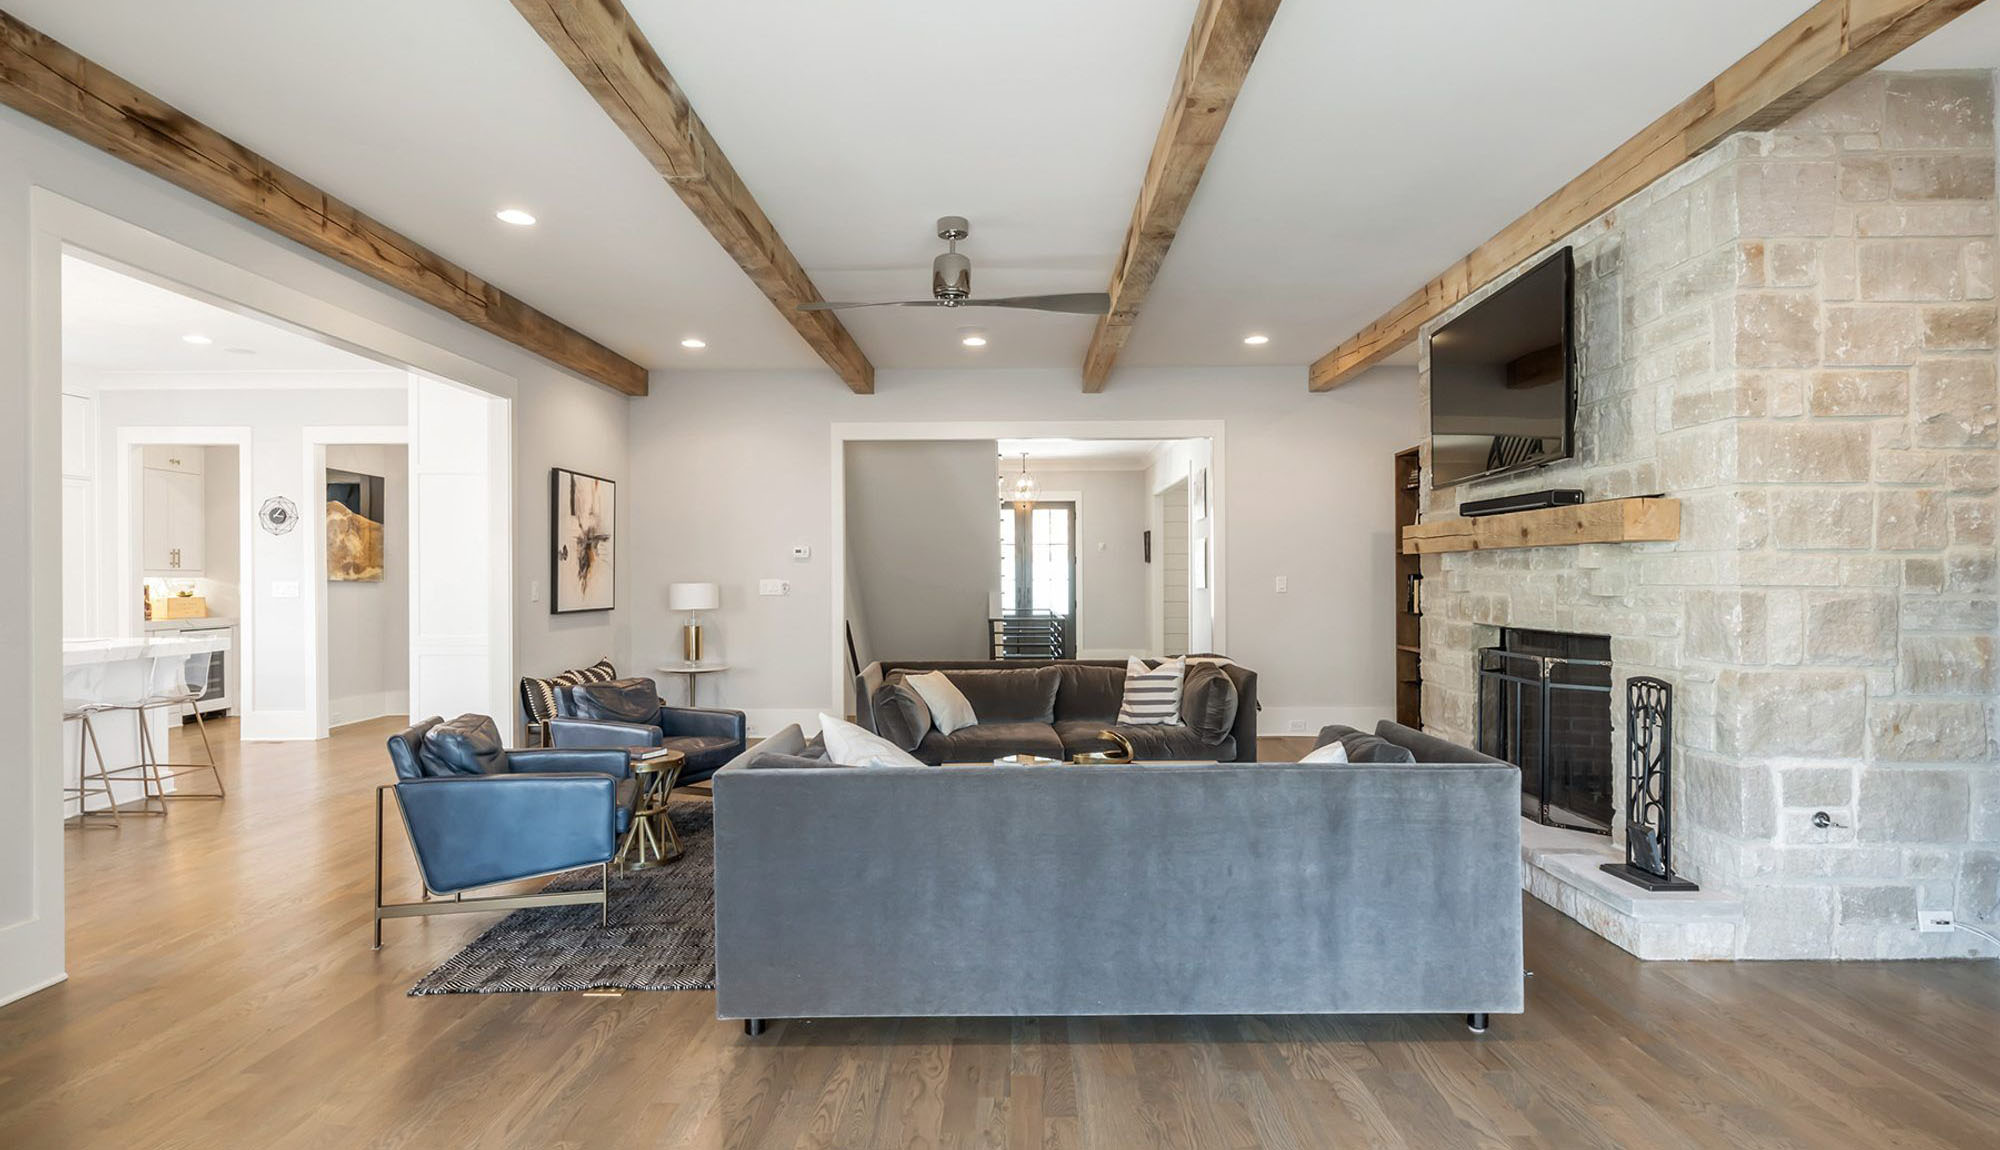 Bleached exposed ceiling beams to match the light grayish wood floors.